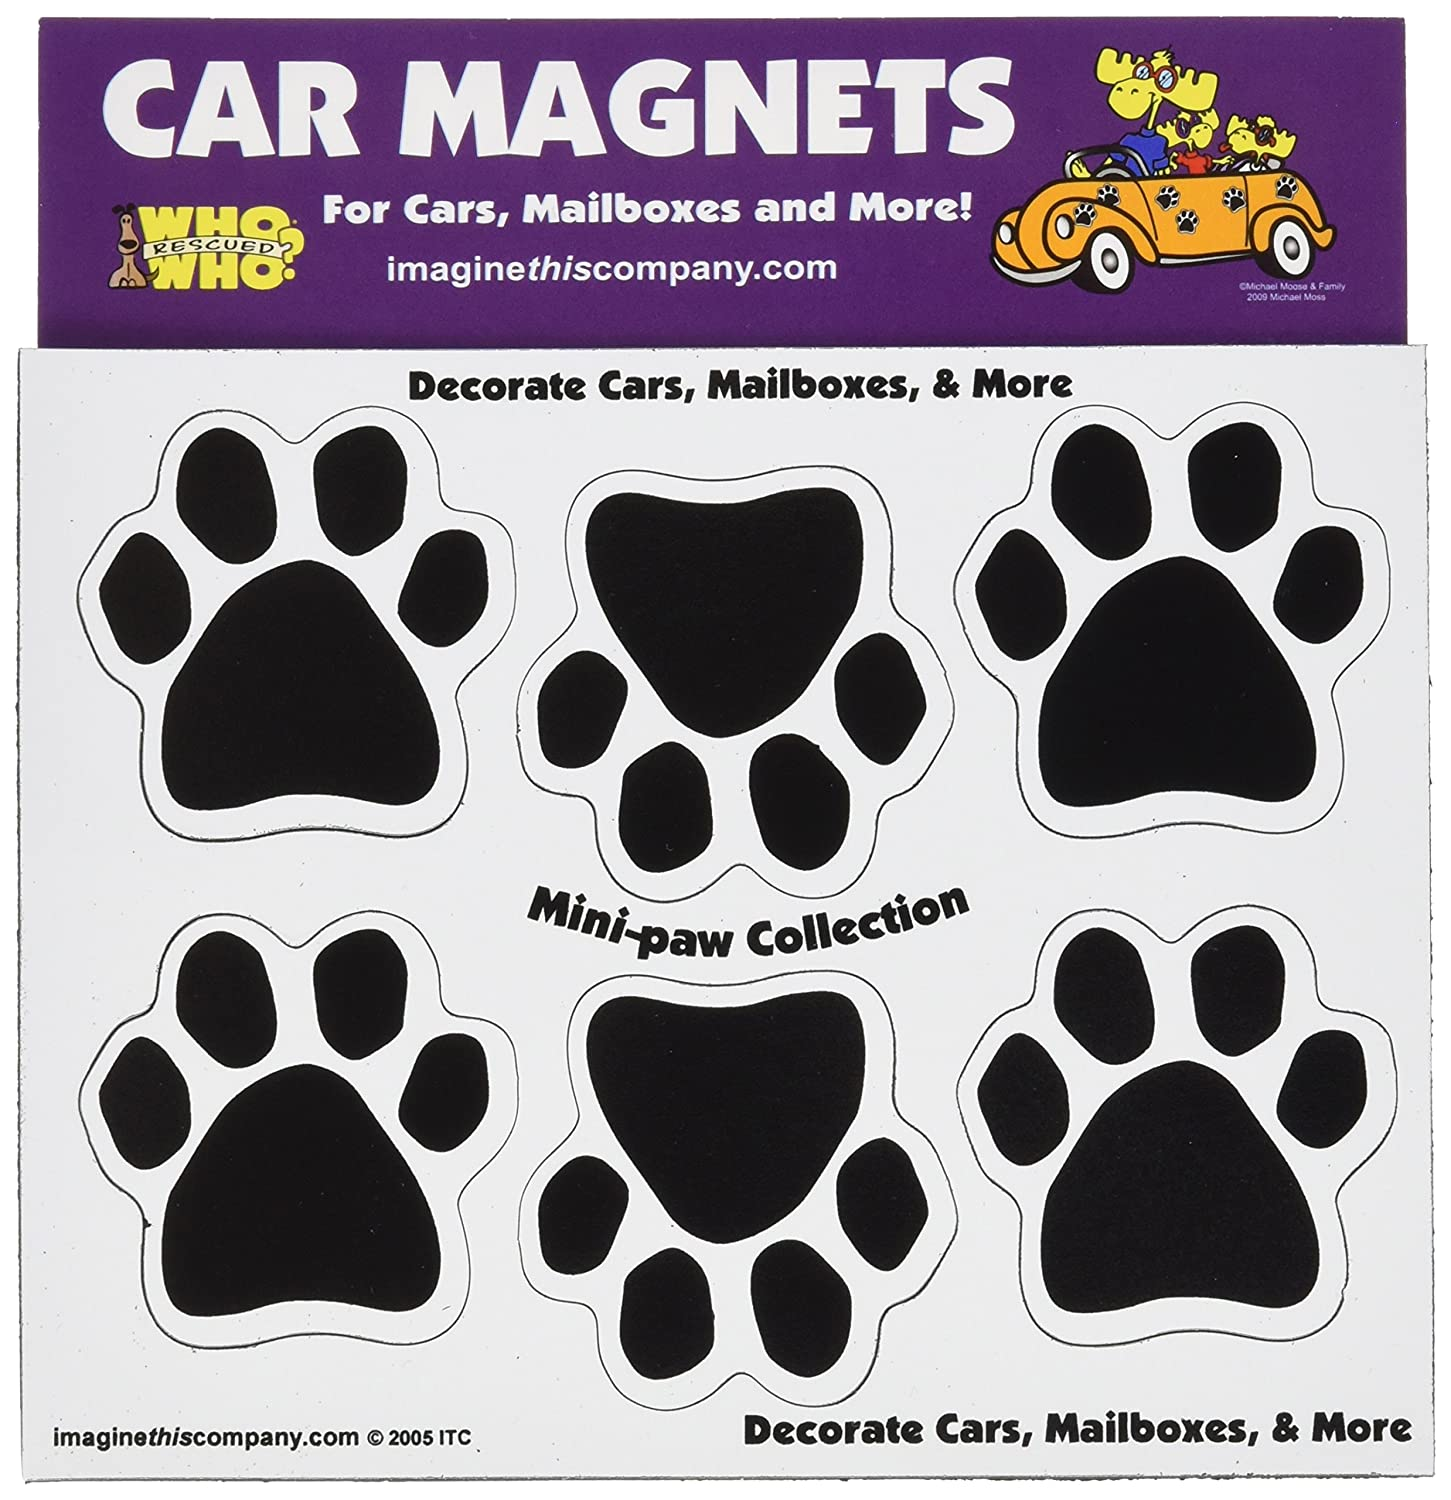 Imagine This 1-3//4-Inch by 1-3//4-Inch 6 Mini Paws Car Magnet Black Imagine This Company N0460